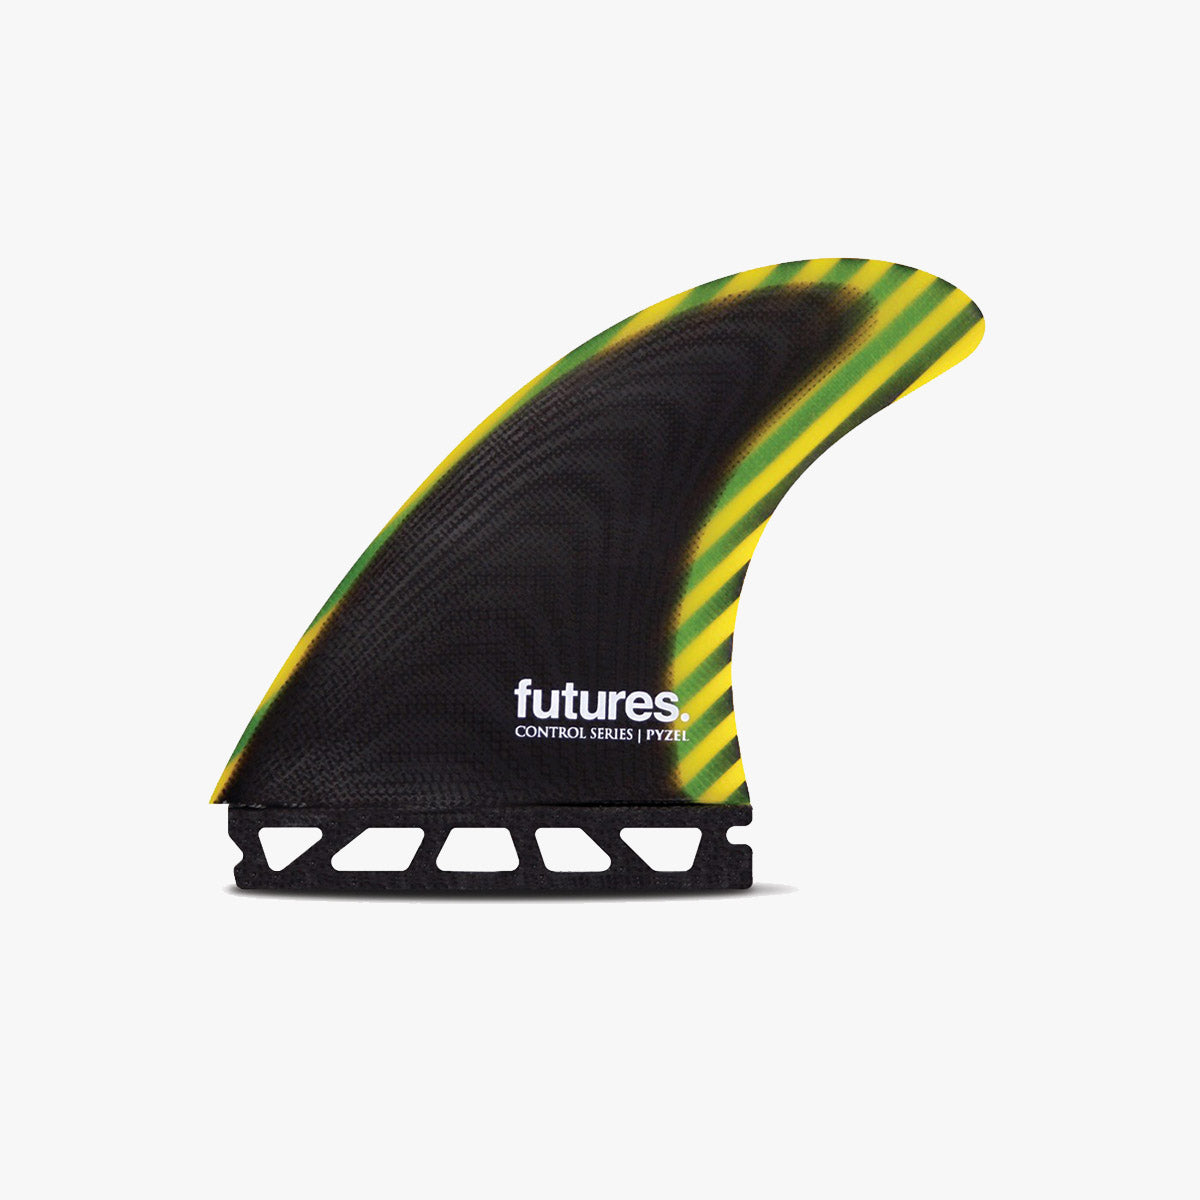 Pyzel Futures Fins Control Series - BGS Bali Best Surf & Coffee Shop